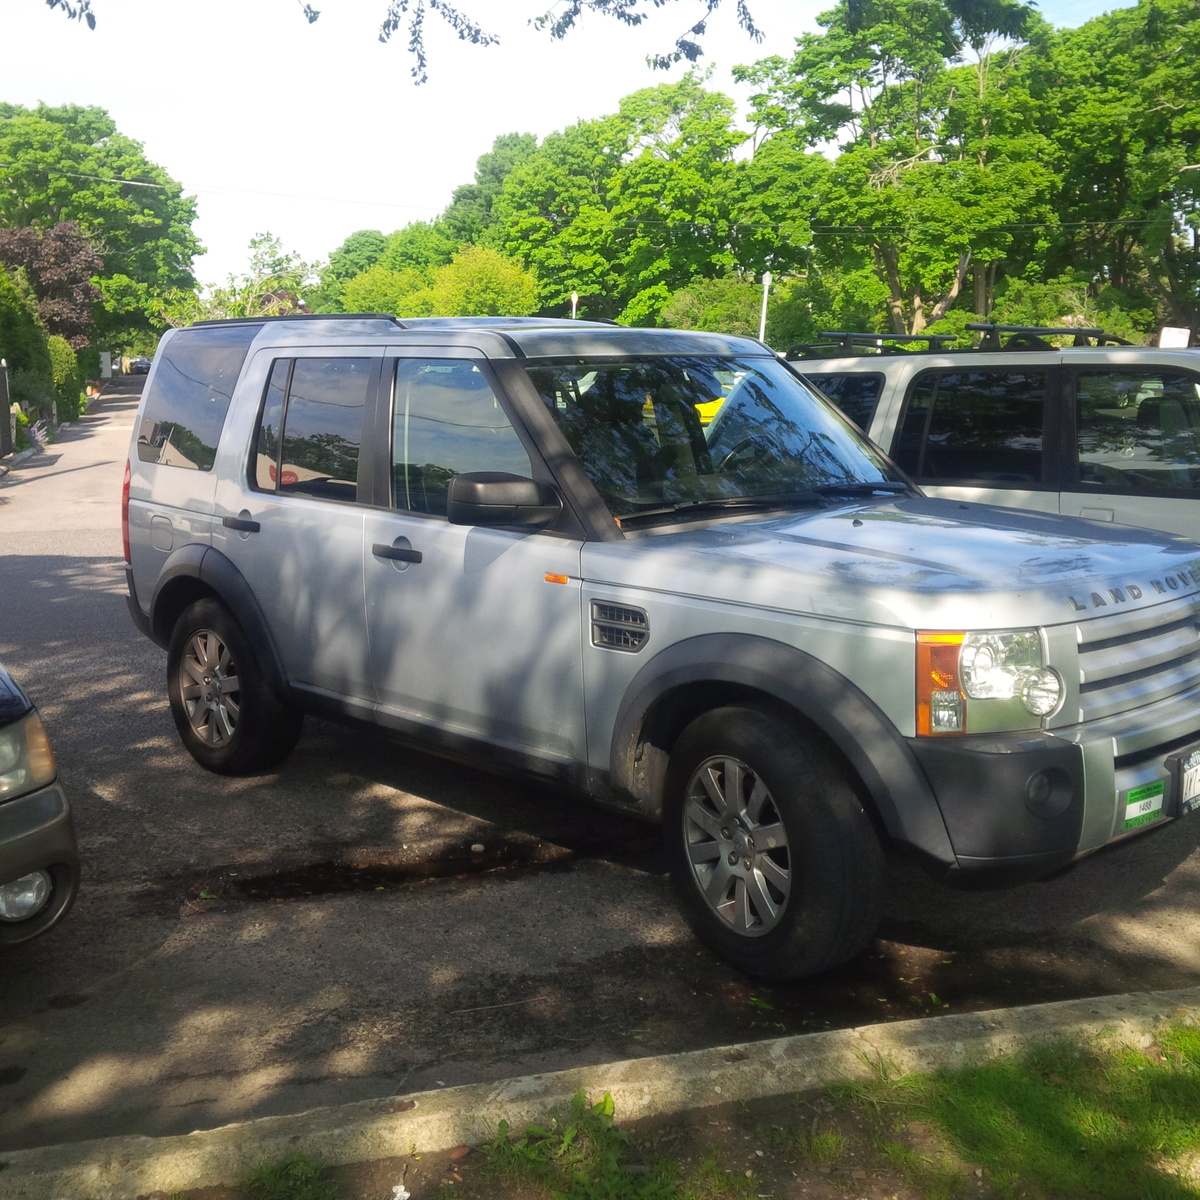 2006 Land Rover Lr3 Hse For Sale: Land Rover Lr3 Related Images,start 150